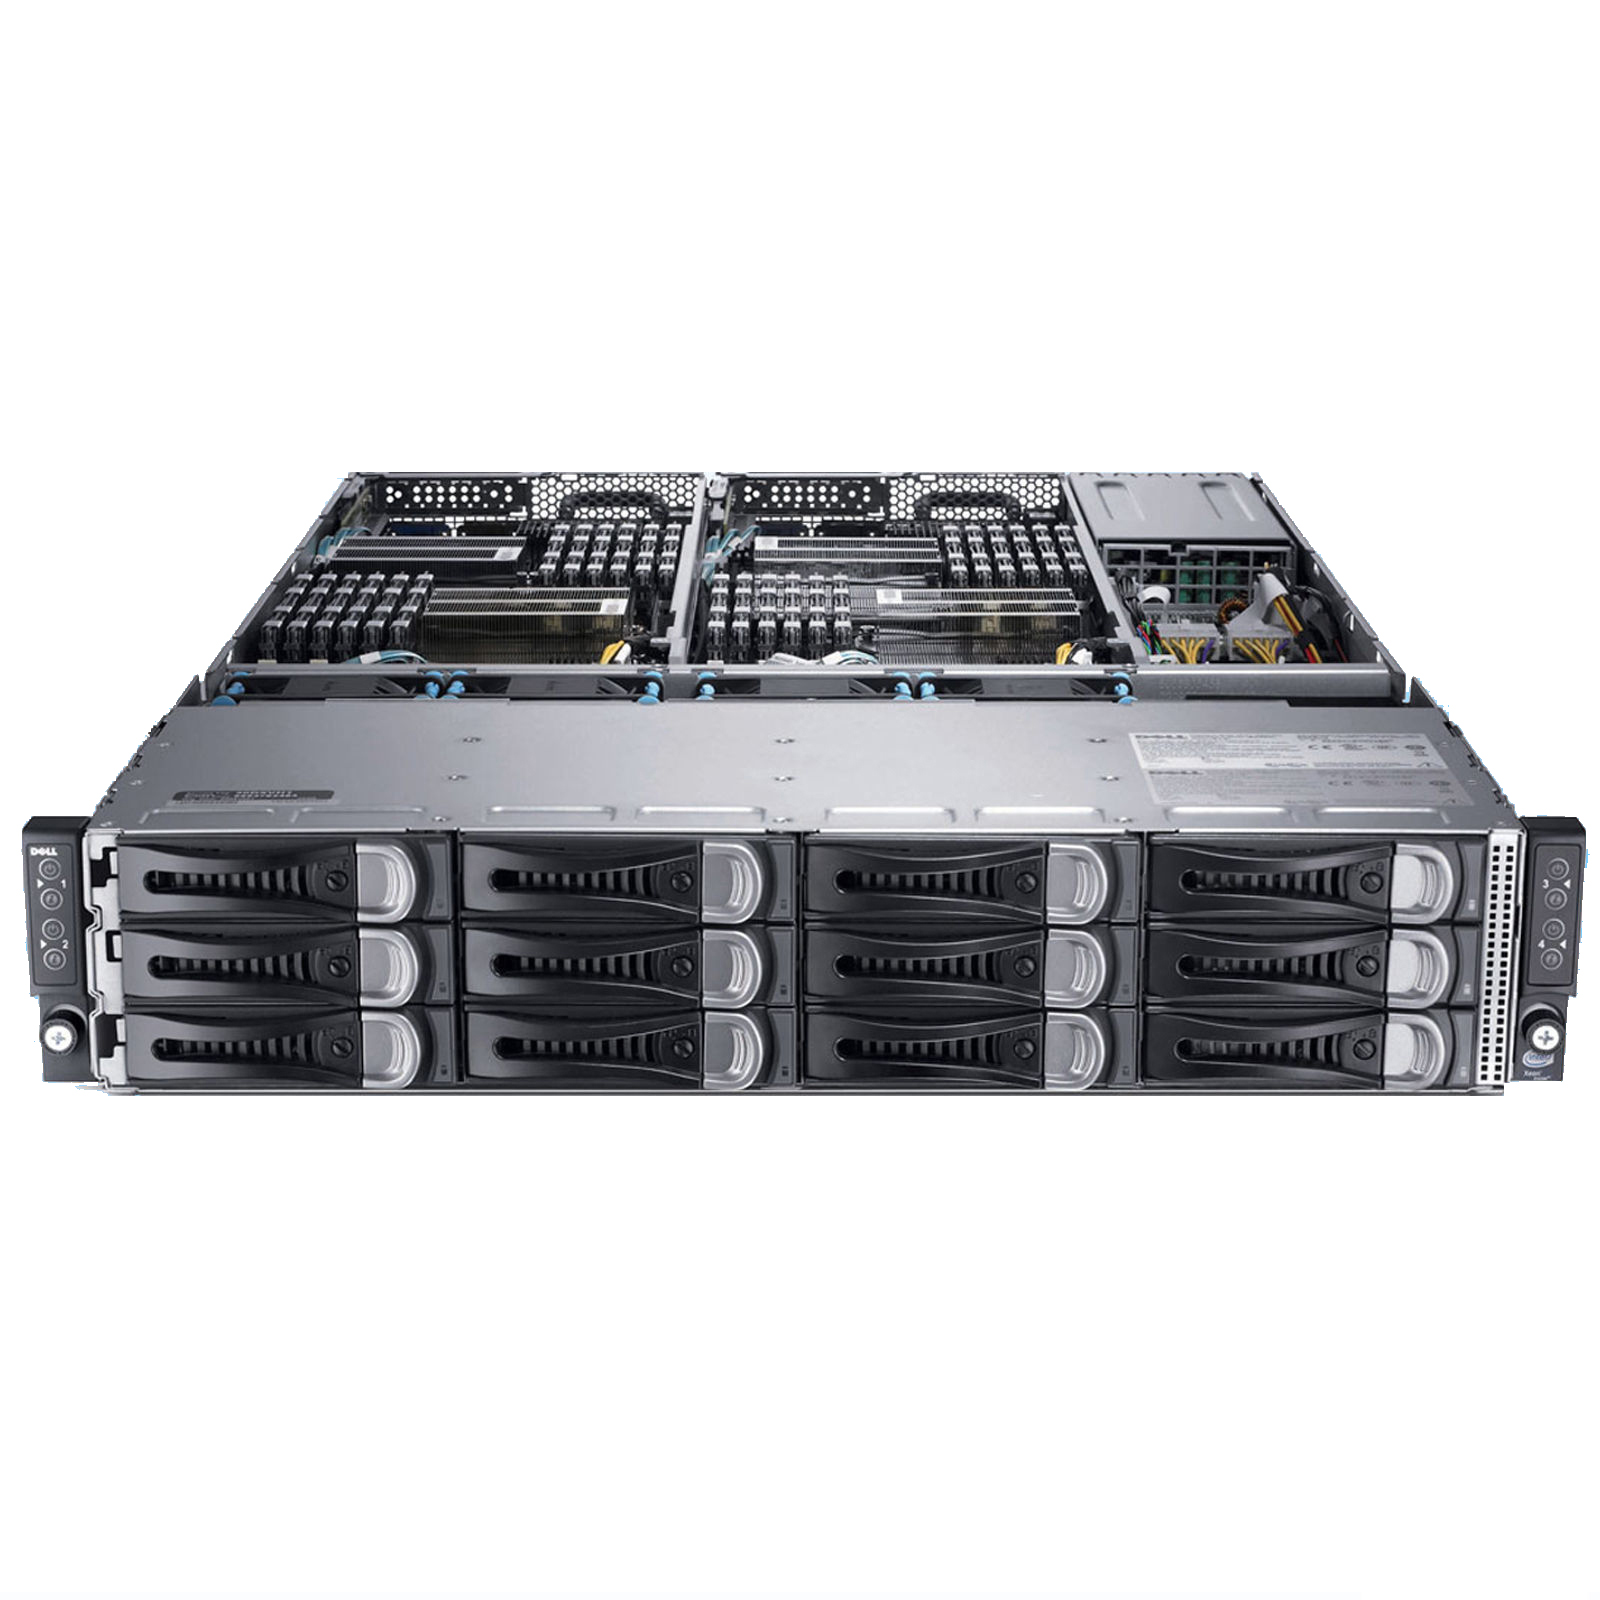 MÁY CHỦ DELL POWEREDGE C6220 E5-2650